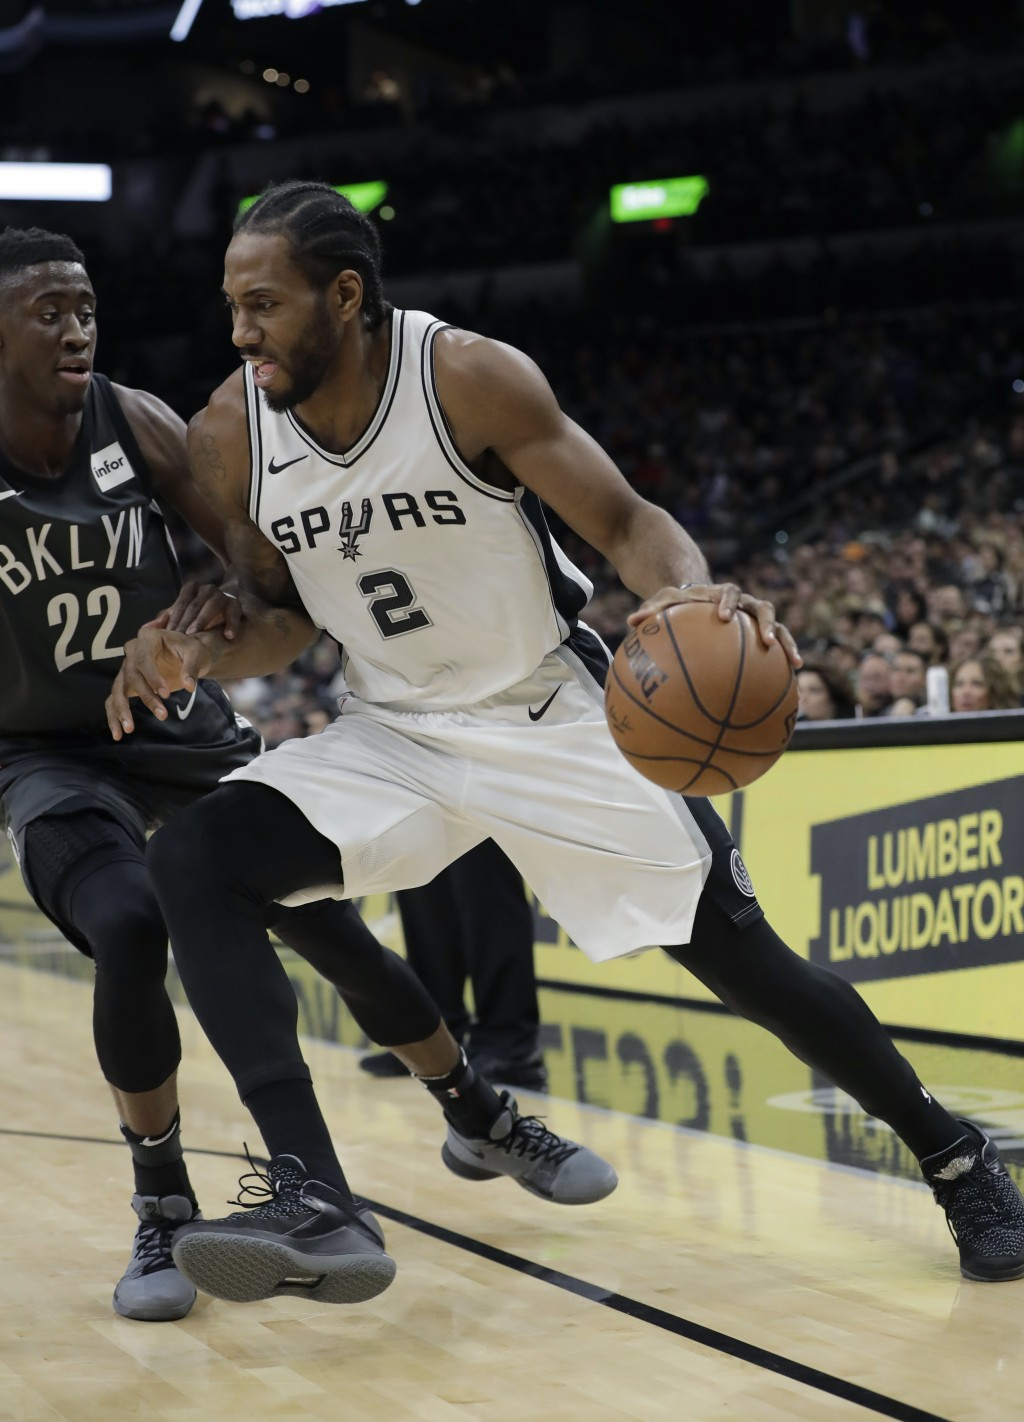 San Antonio Spurs forward Kawhi Leonard (2) drives around Brooklyn Nets guard Caris LeVert (22) during the first half of an NBA basketball game, Tuesd...